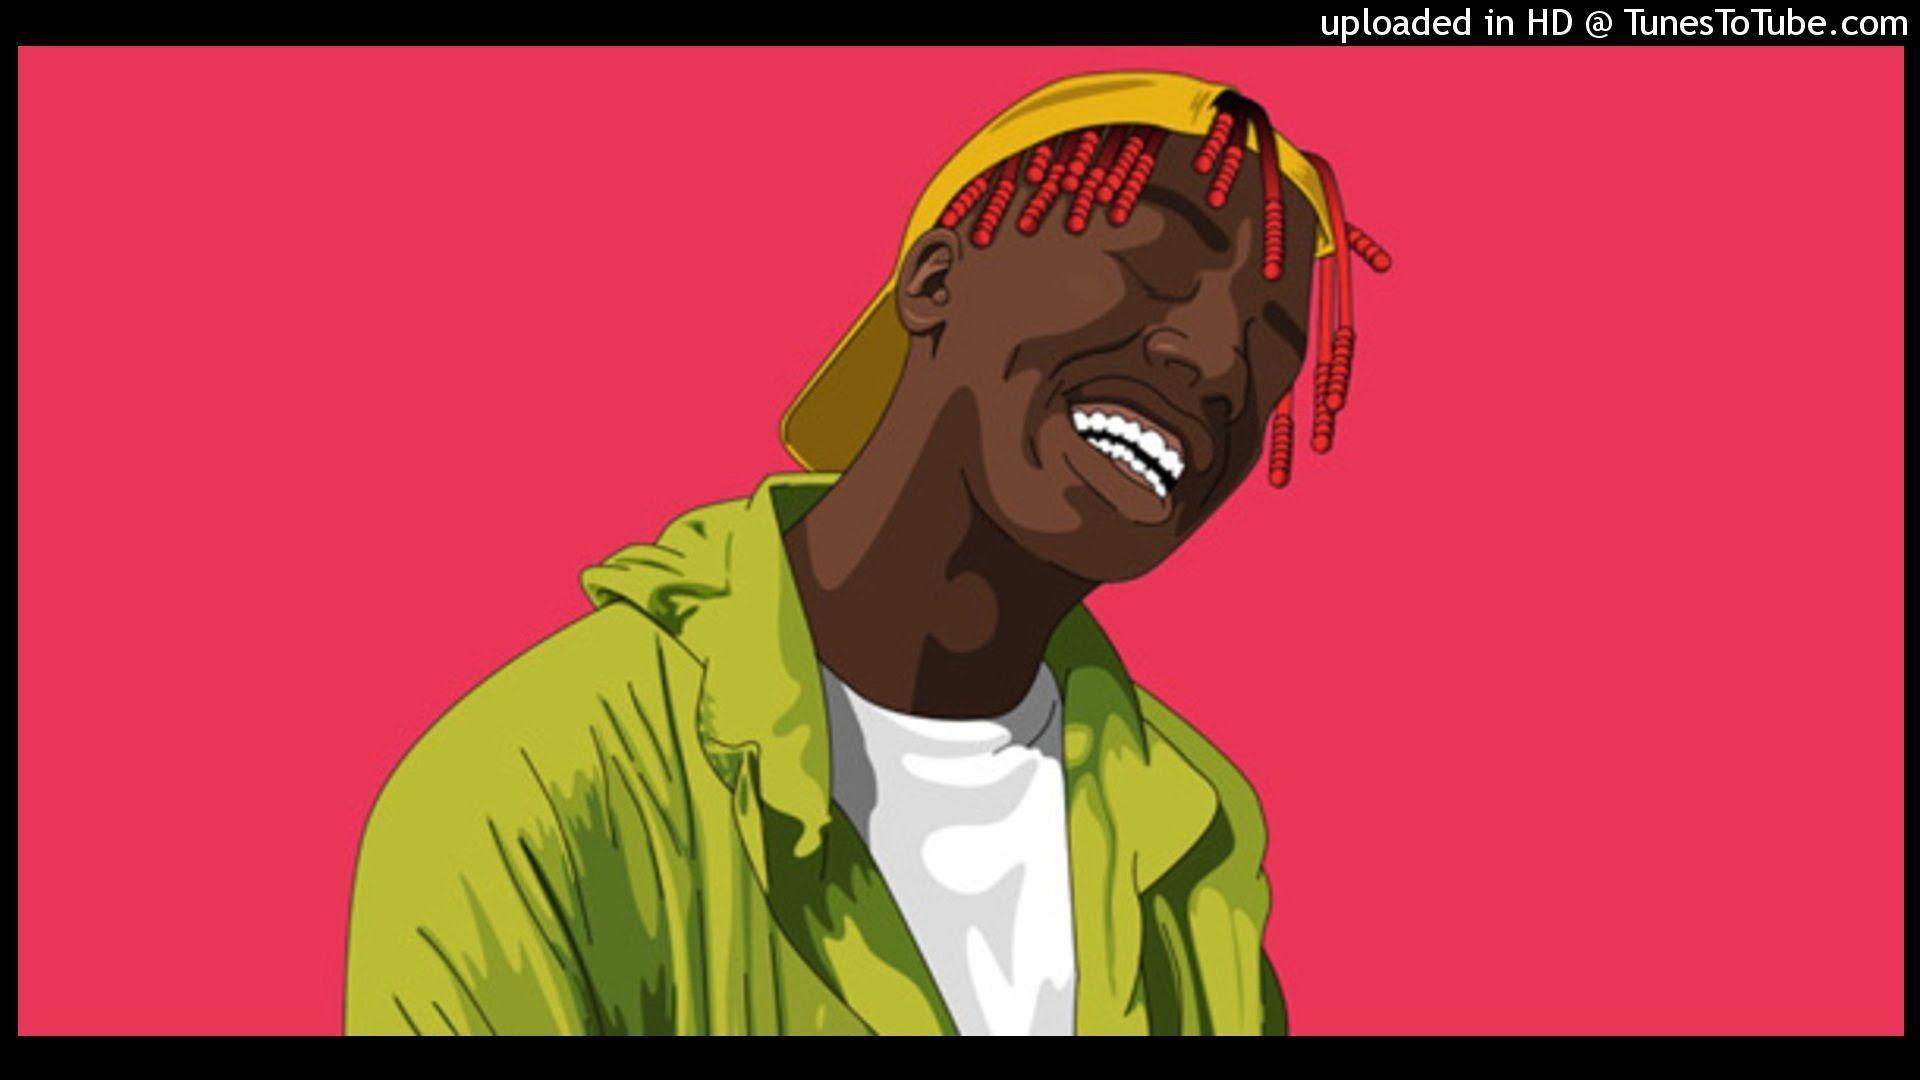 Lil Yachty Wallpapers 75 Pictures 1080x1920 i've made another lil uzi vert wallpaper for phones 1080x1920. lil yachty wallpapers 75 pictures